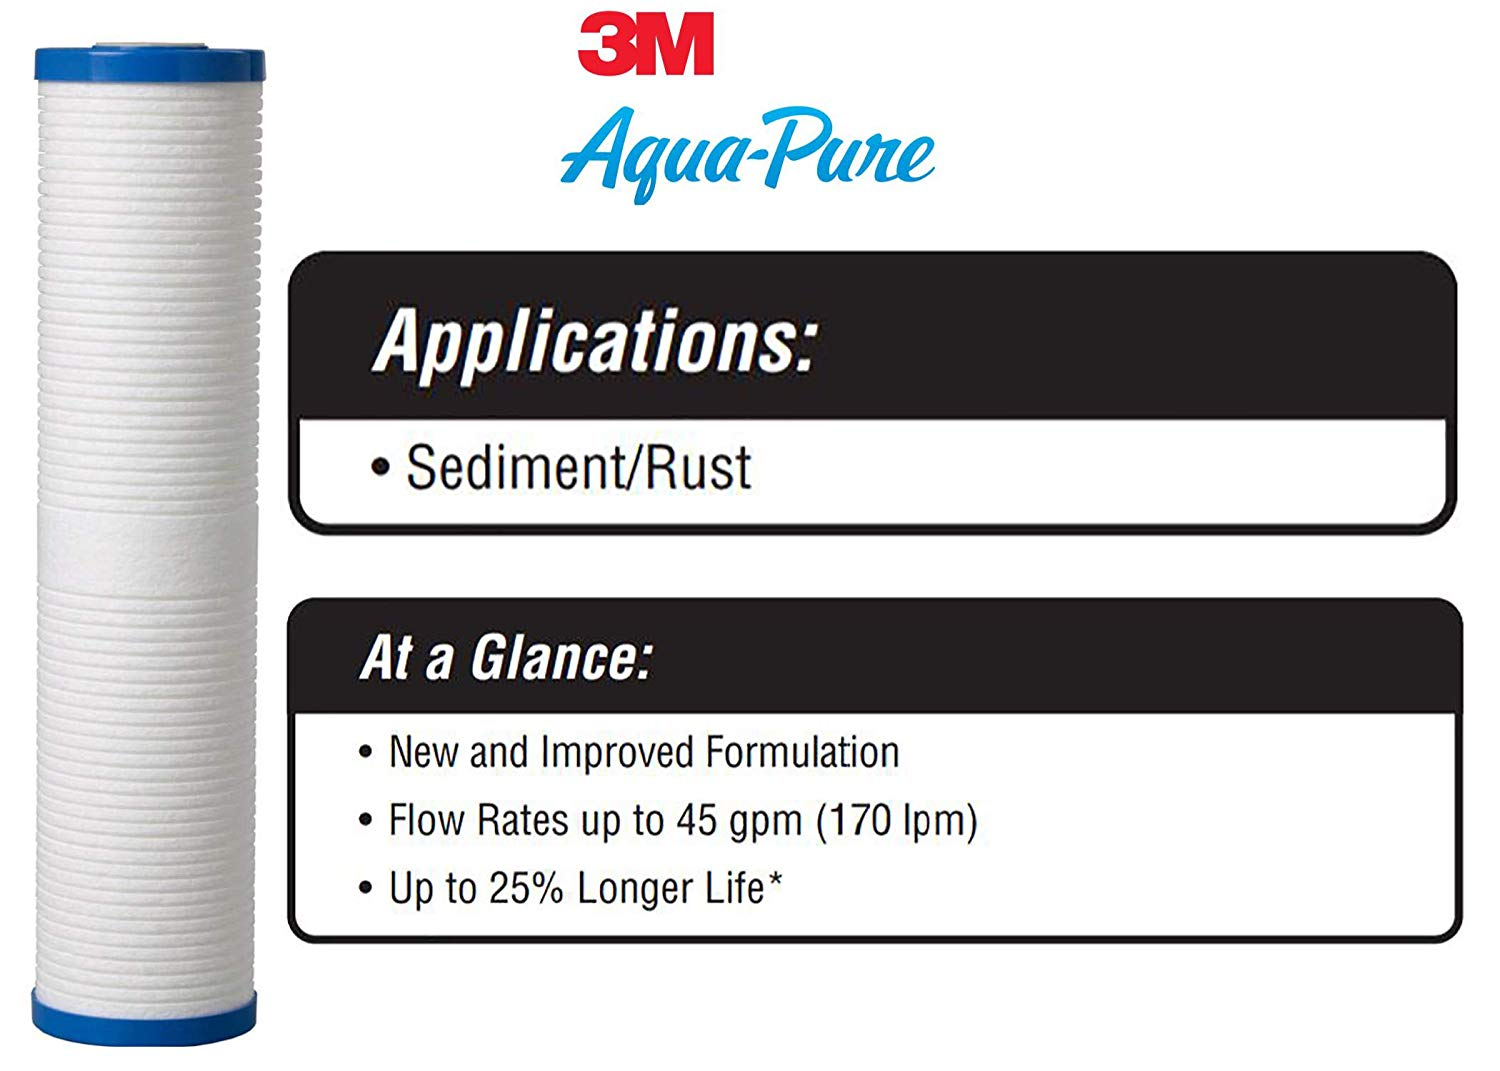 3M AquaPure AP810-2 Whole House Replacement Water Filter